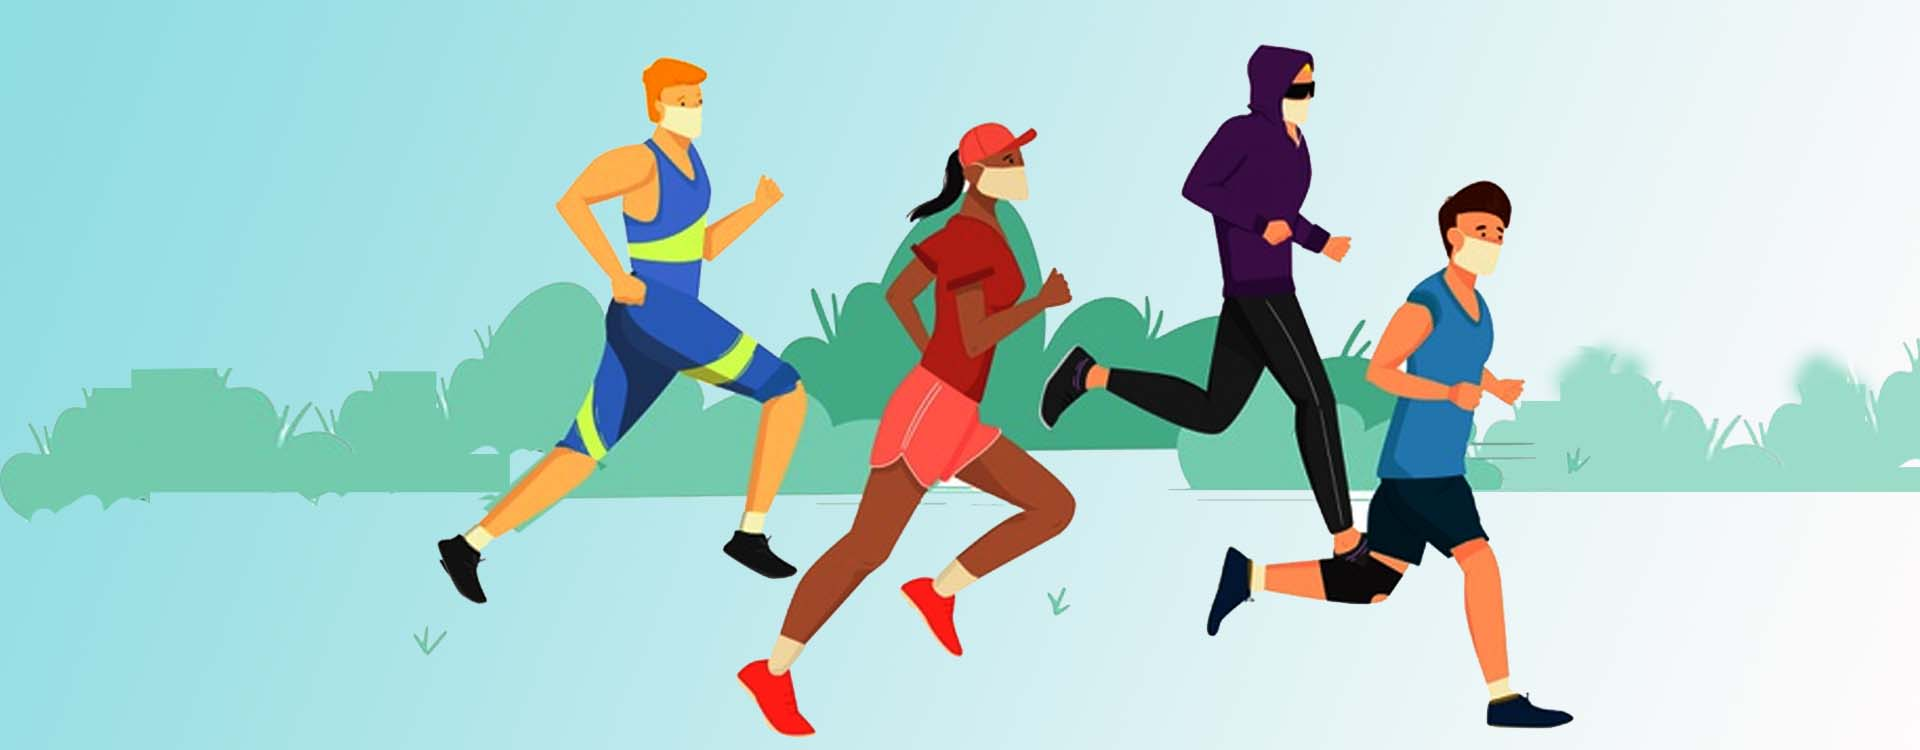 Indian activewear is facing surges since people have shifted to more into digital fitness.